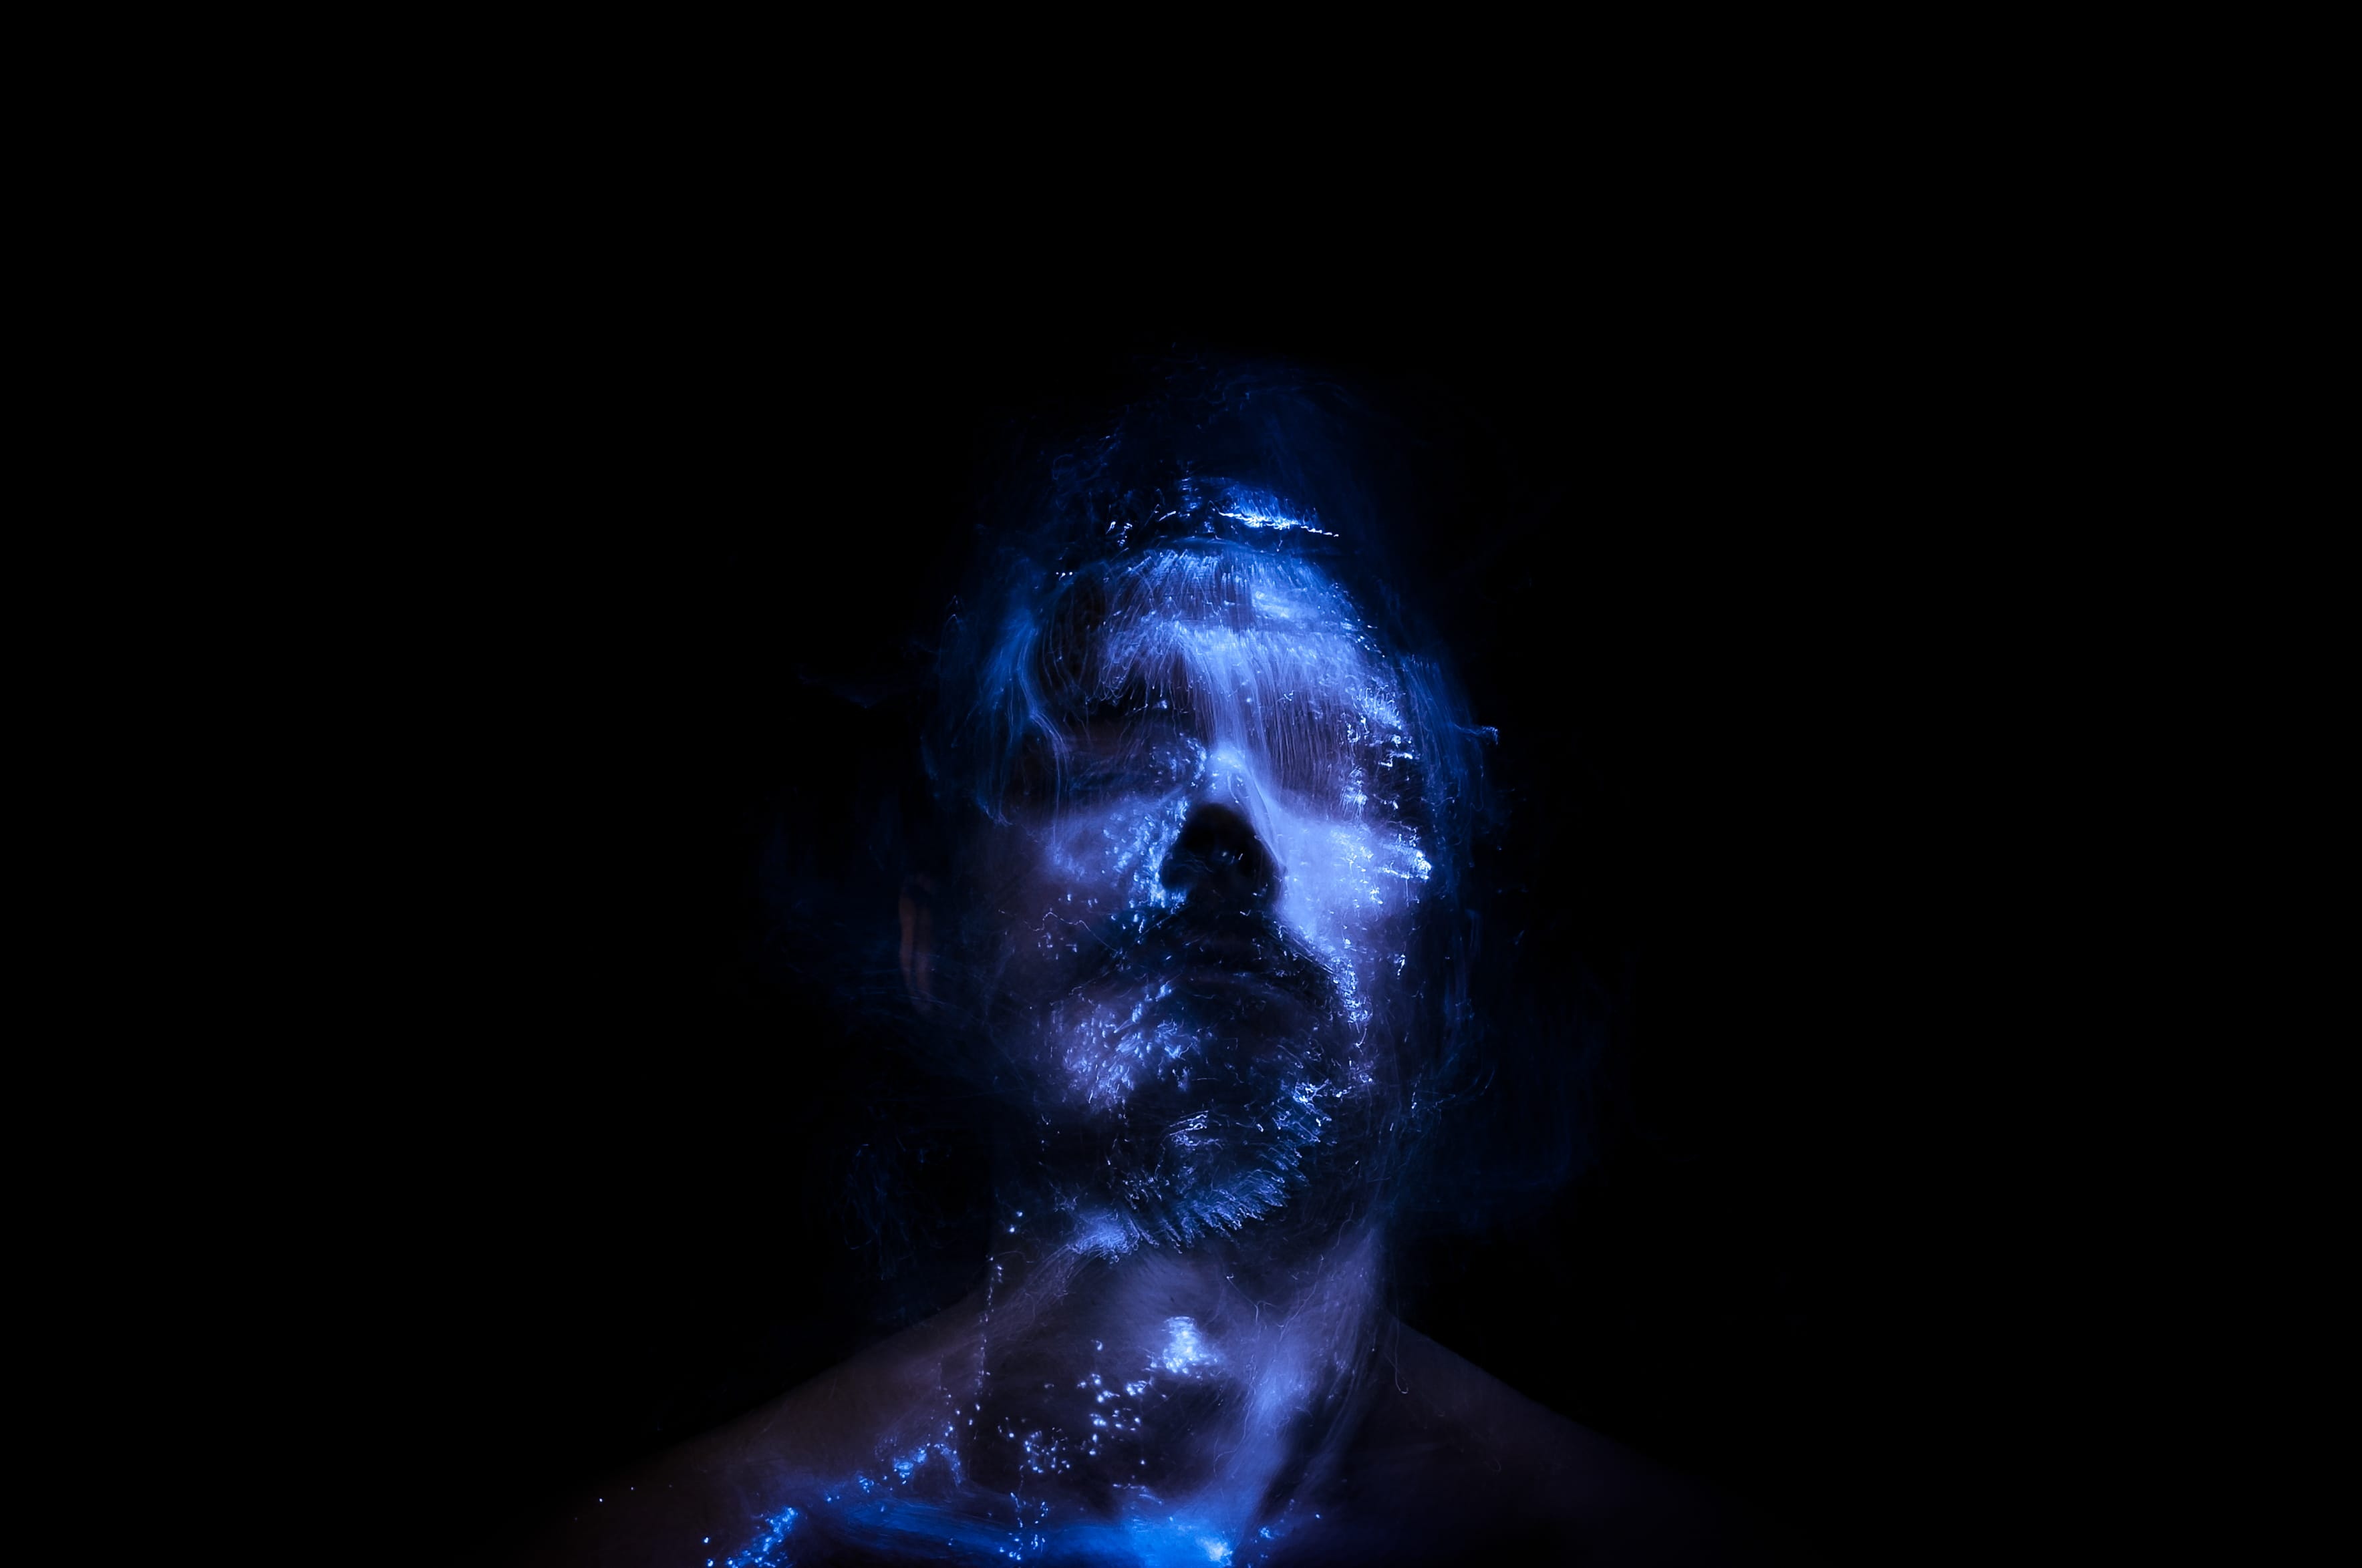 Man in dark room with light pinting on his face giving a cyber effect stock photograph by Marco Hartz EyeEm